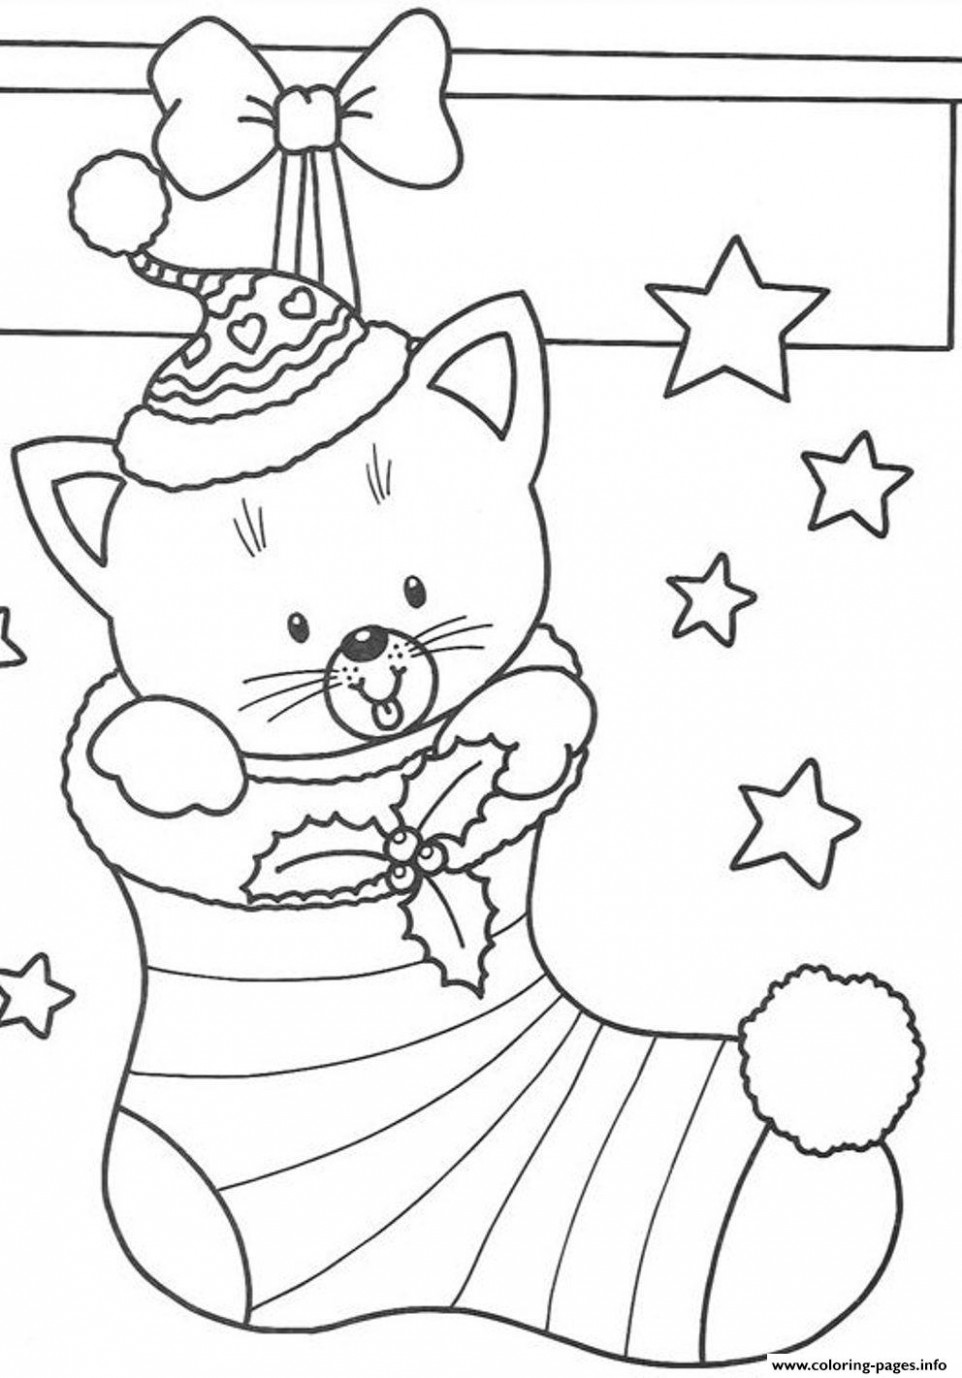 Free S Christmas Cat In Stocking17a517 Coloring Pages Printable – Printable Christmas Cat Coloring Pages